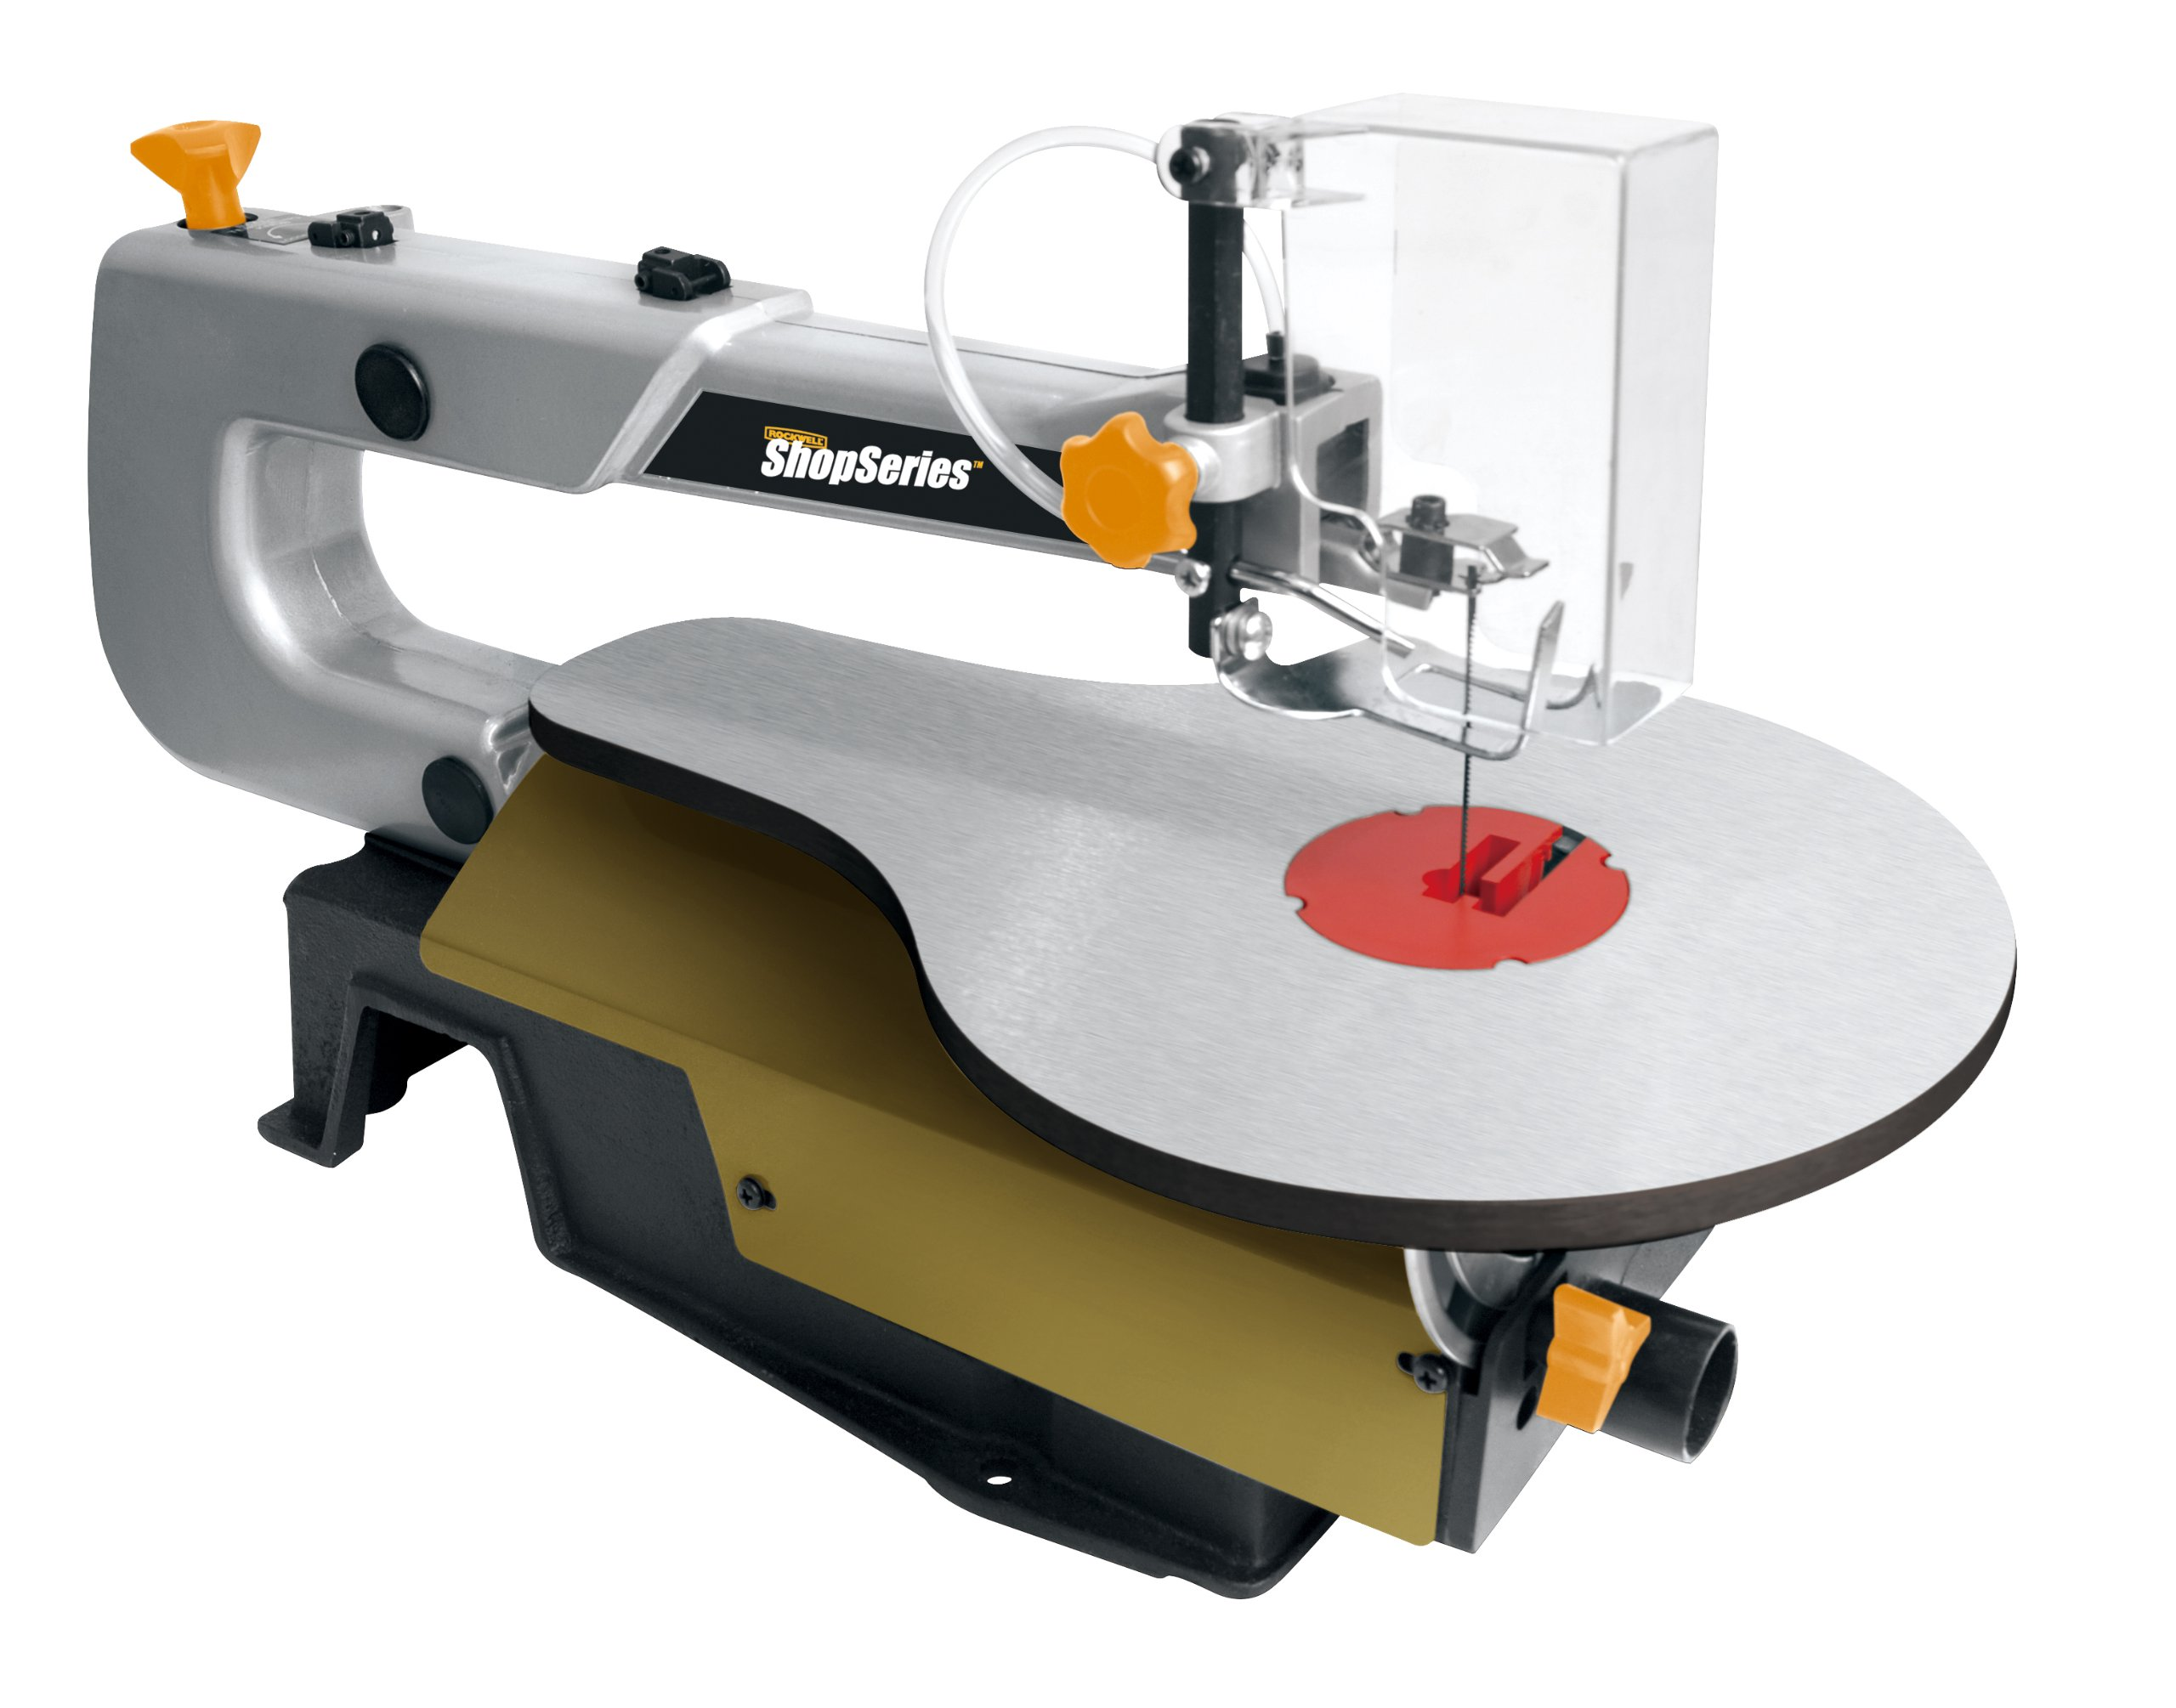 ShopSeries RK7315 16'' Scroll Saw with Variable Speed Control